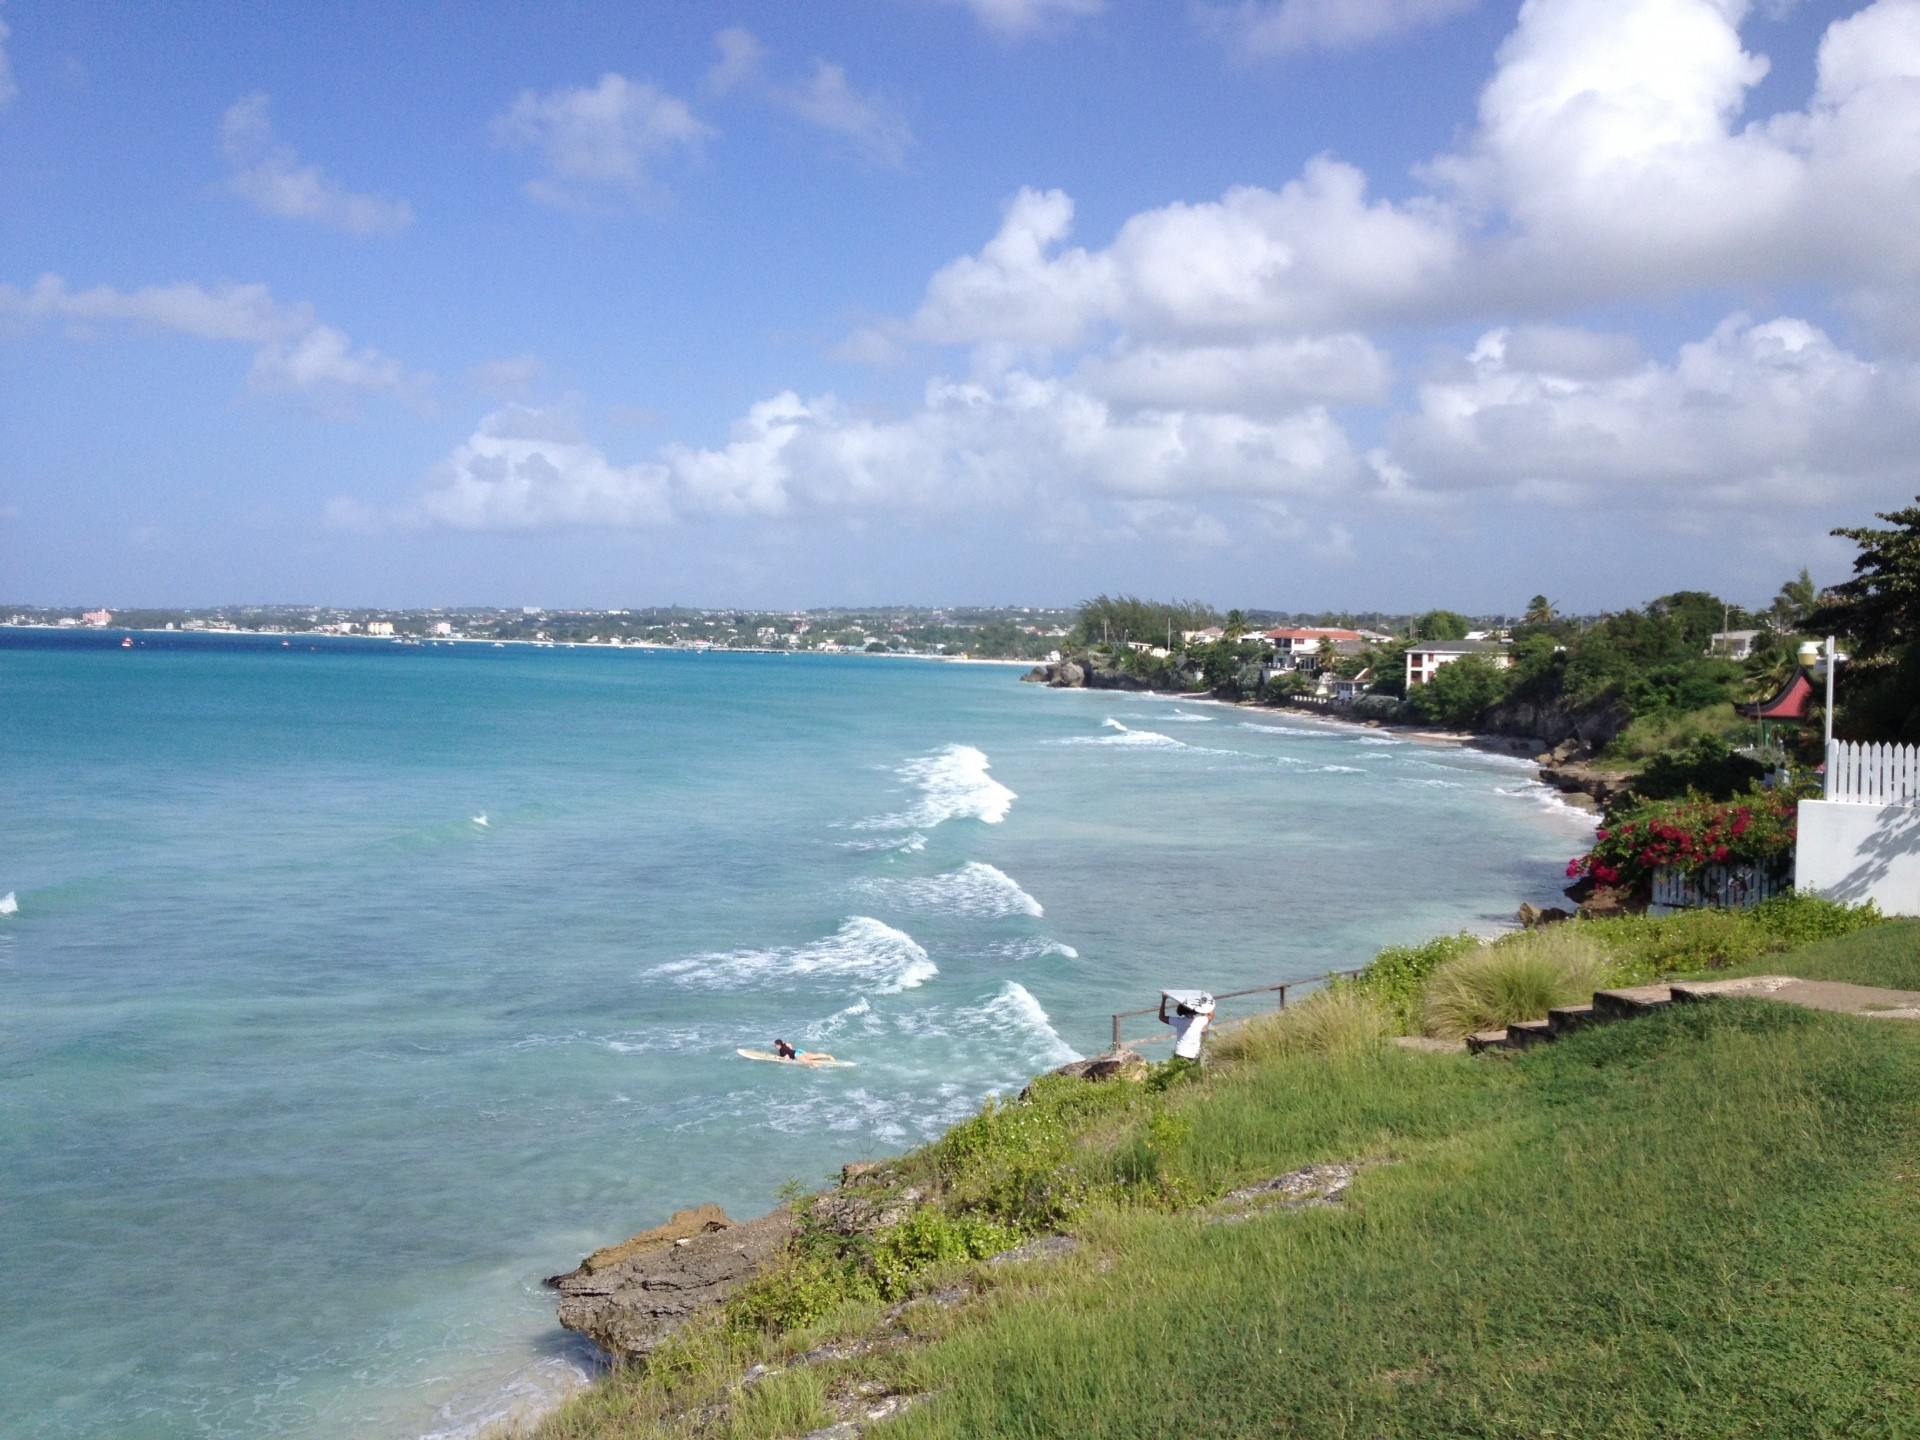 Ride The Tide Surf School Barbados's photo of Freights